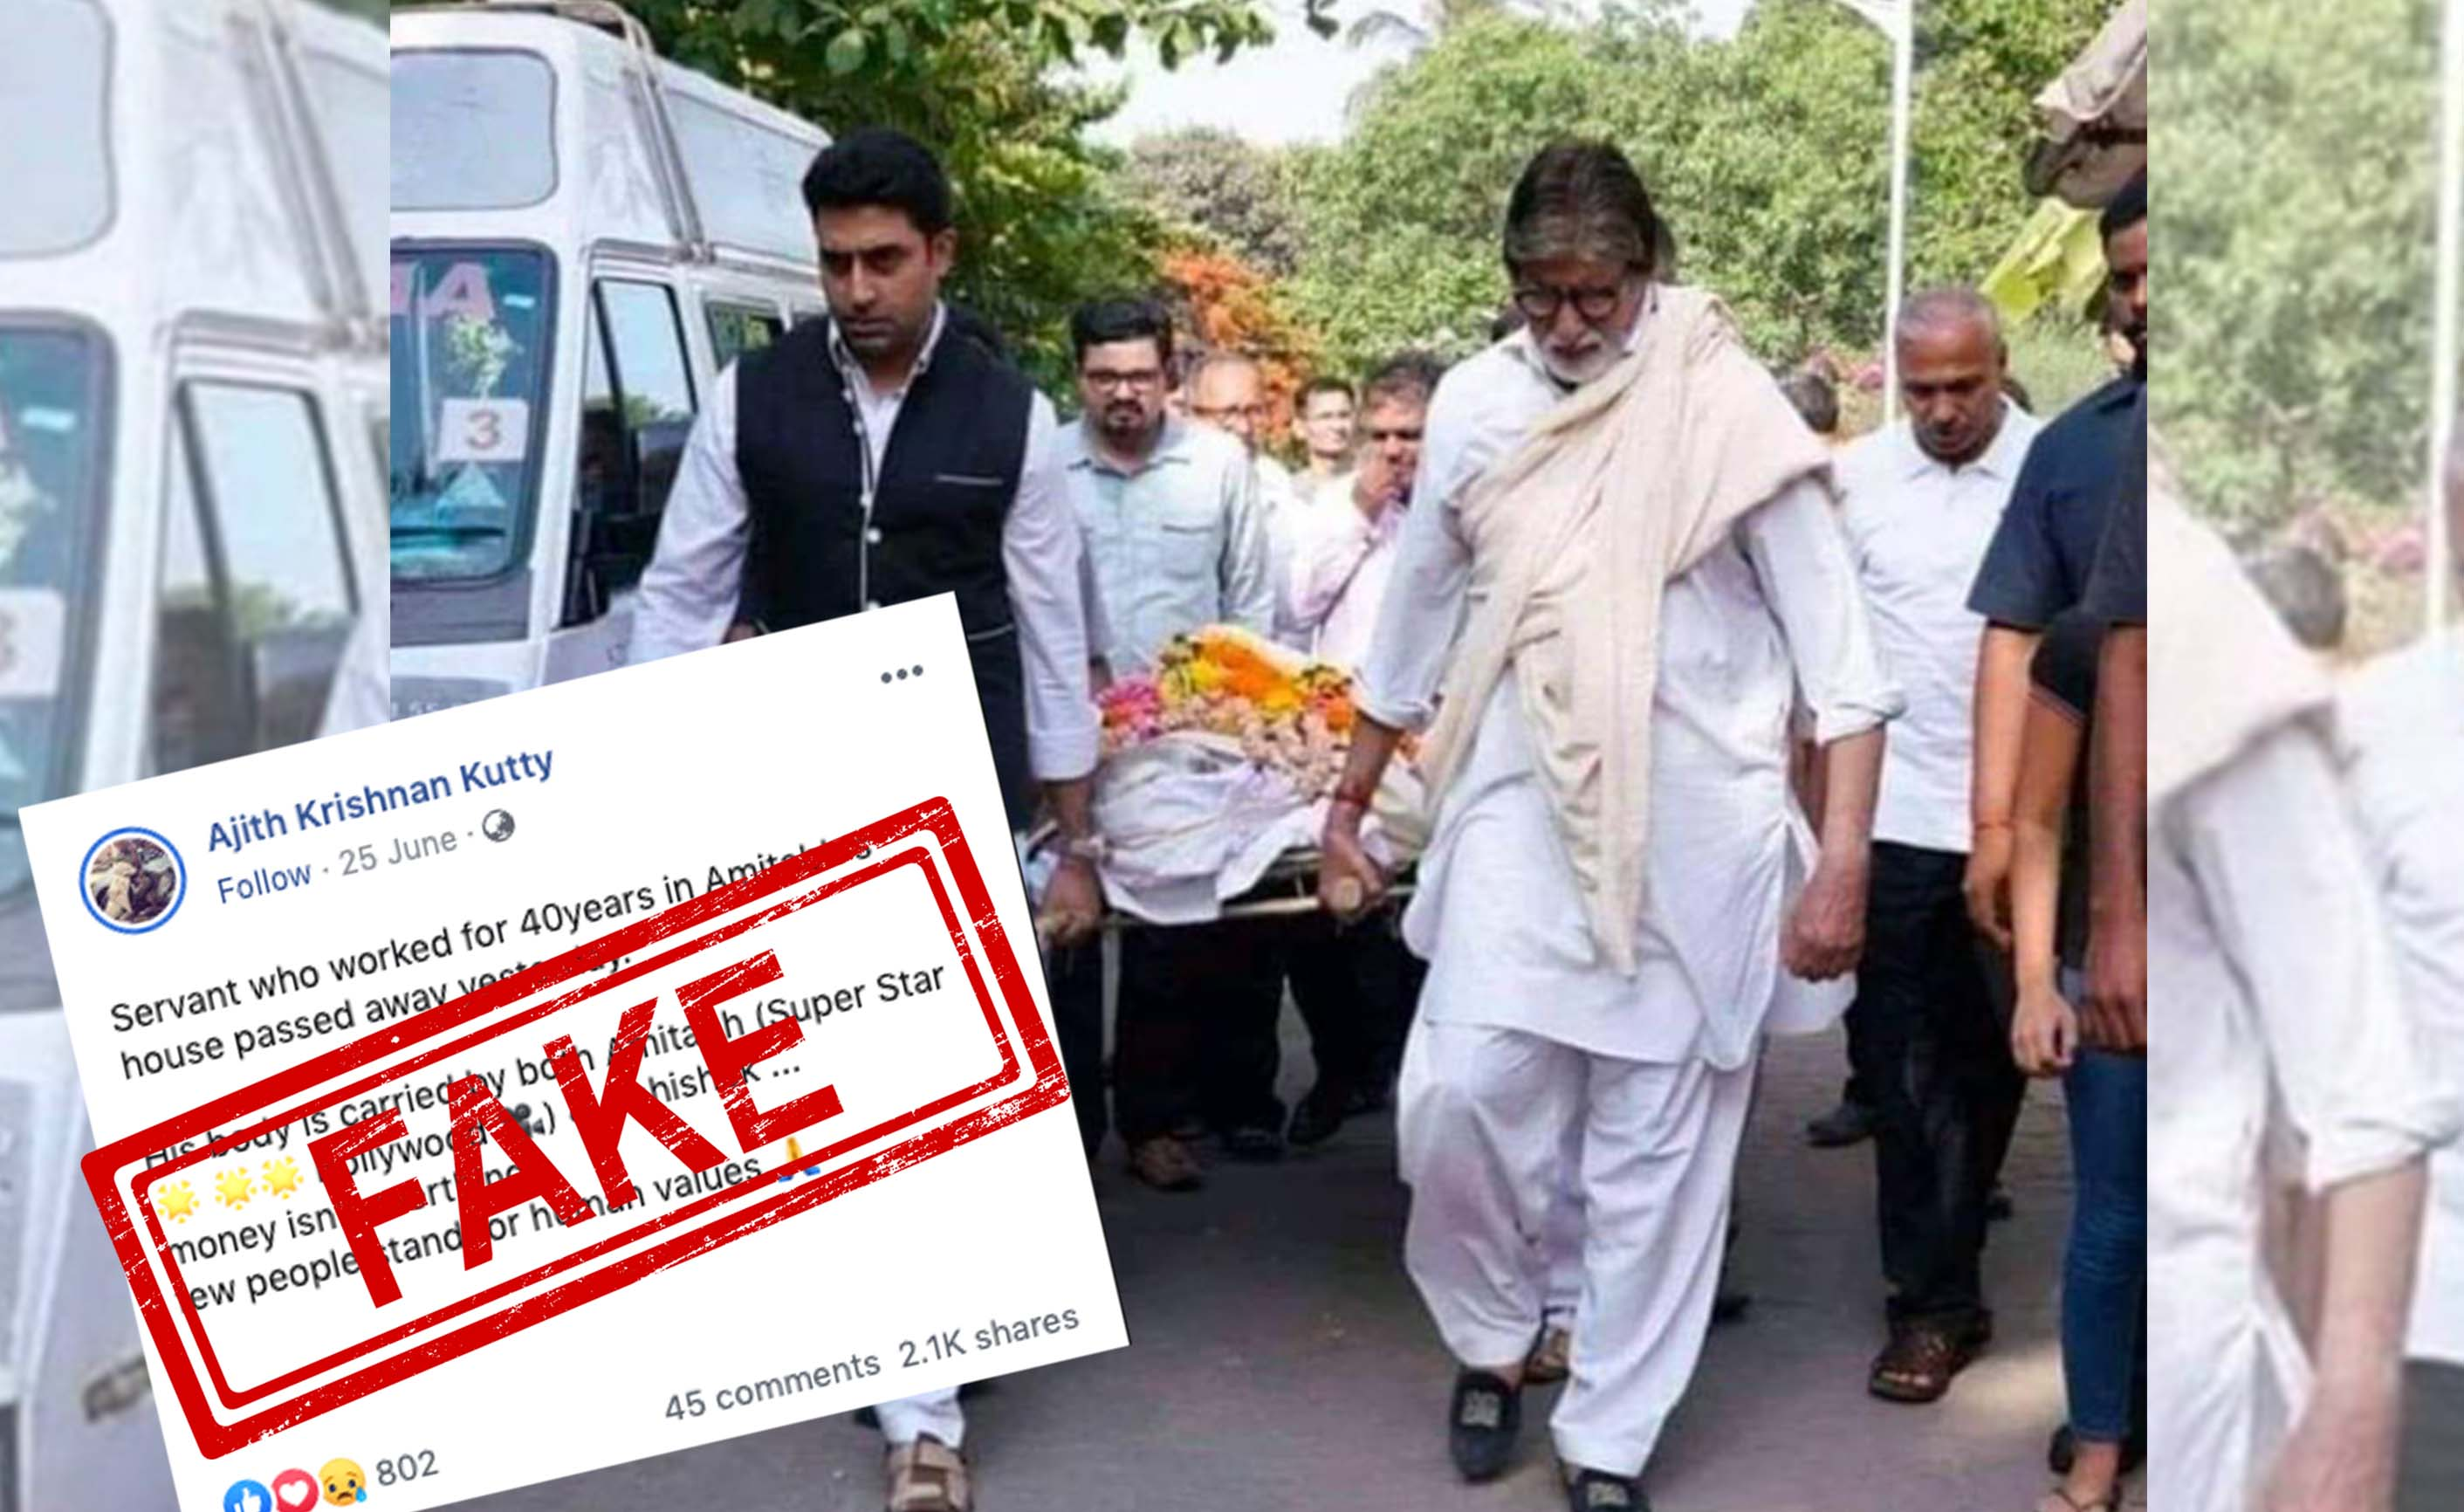 Amitabh Bachchan, Abhishek Bachchan, bier, Lift, Servant, Manager, Newsmobile, Mobile, News, India, Fake, Fact Check, Fact Checker